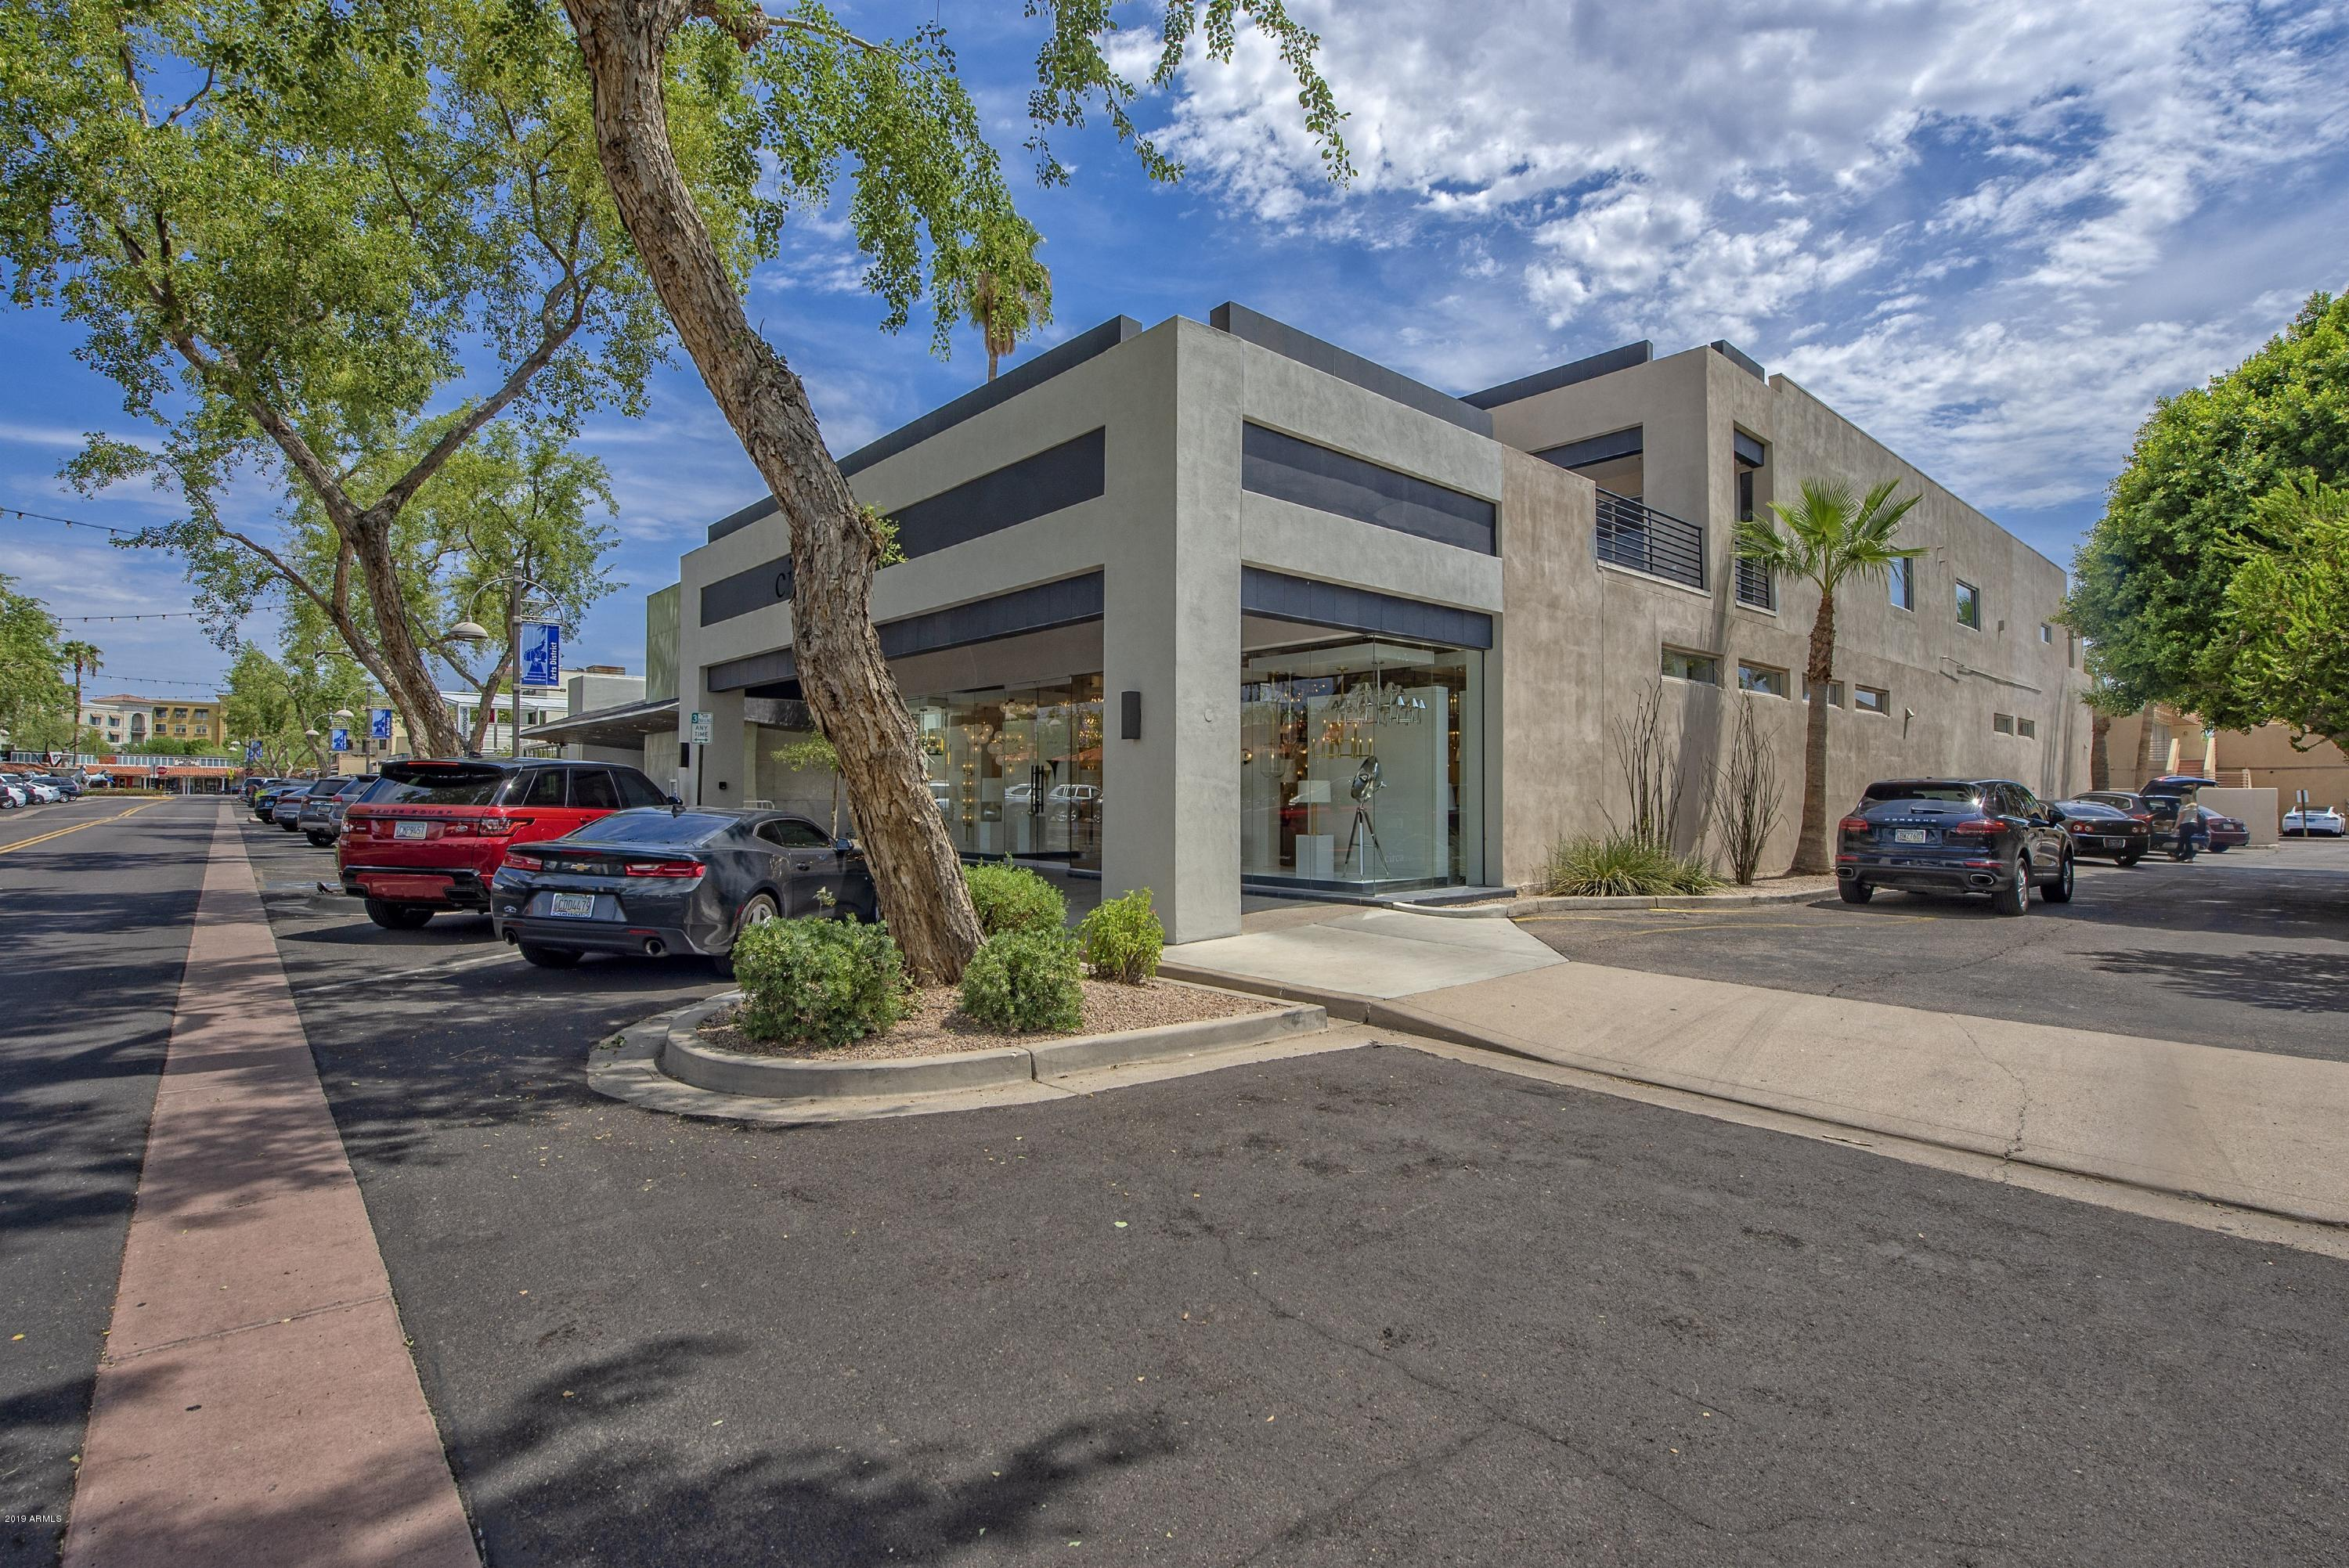 4201 N MARSHALL Way, Scottsdale, AZ 85251, 2 Bedrooms Bedrooms, ,Residential Lease,For Rent,4201 N MARSHALL Way,5959953